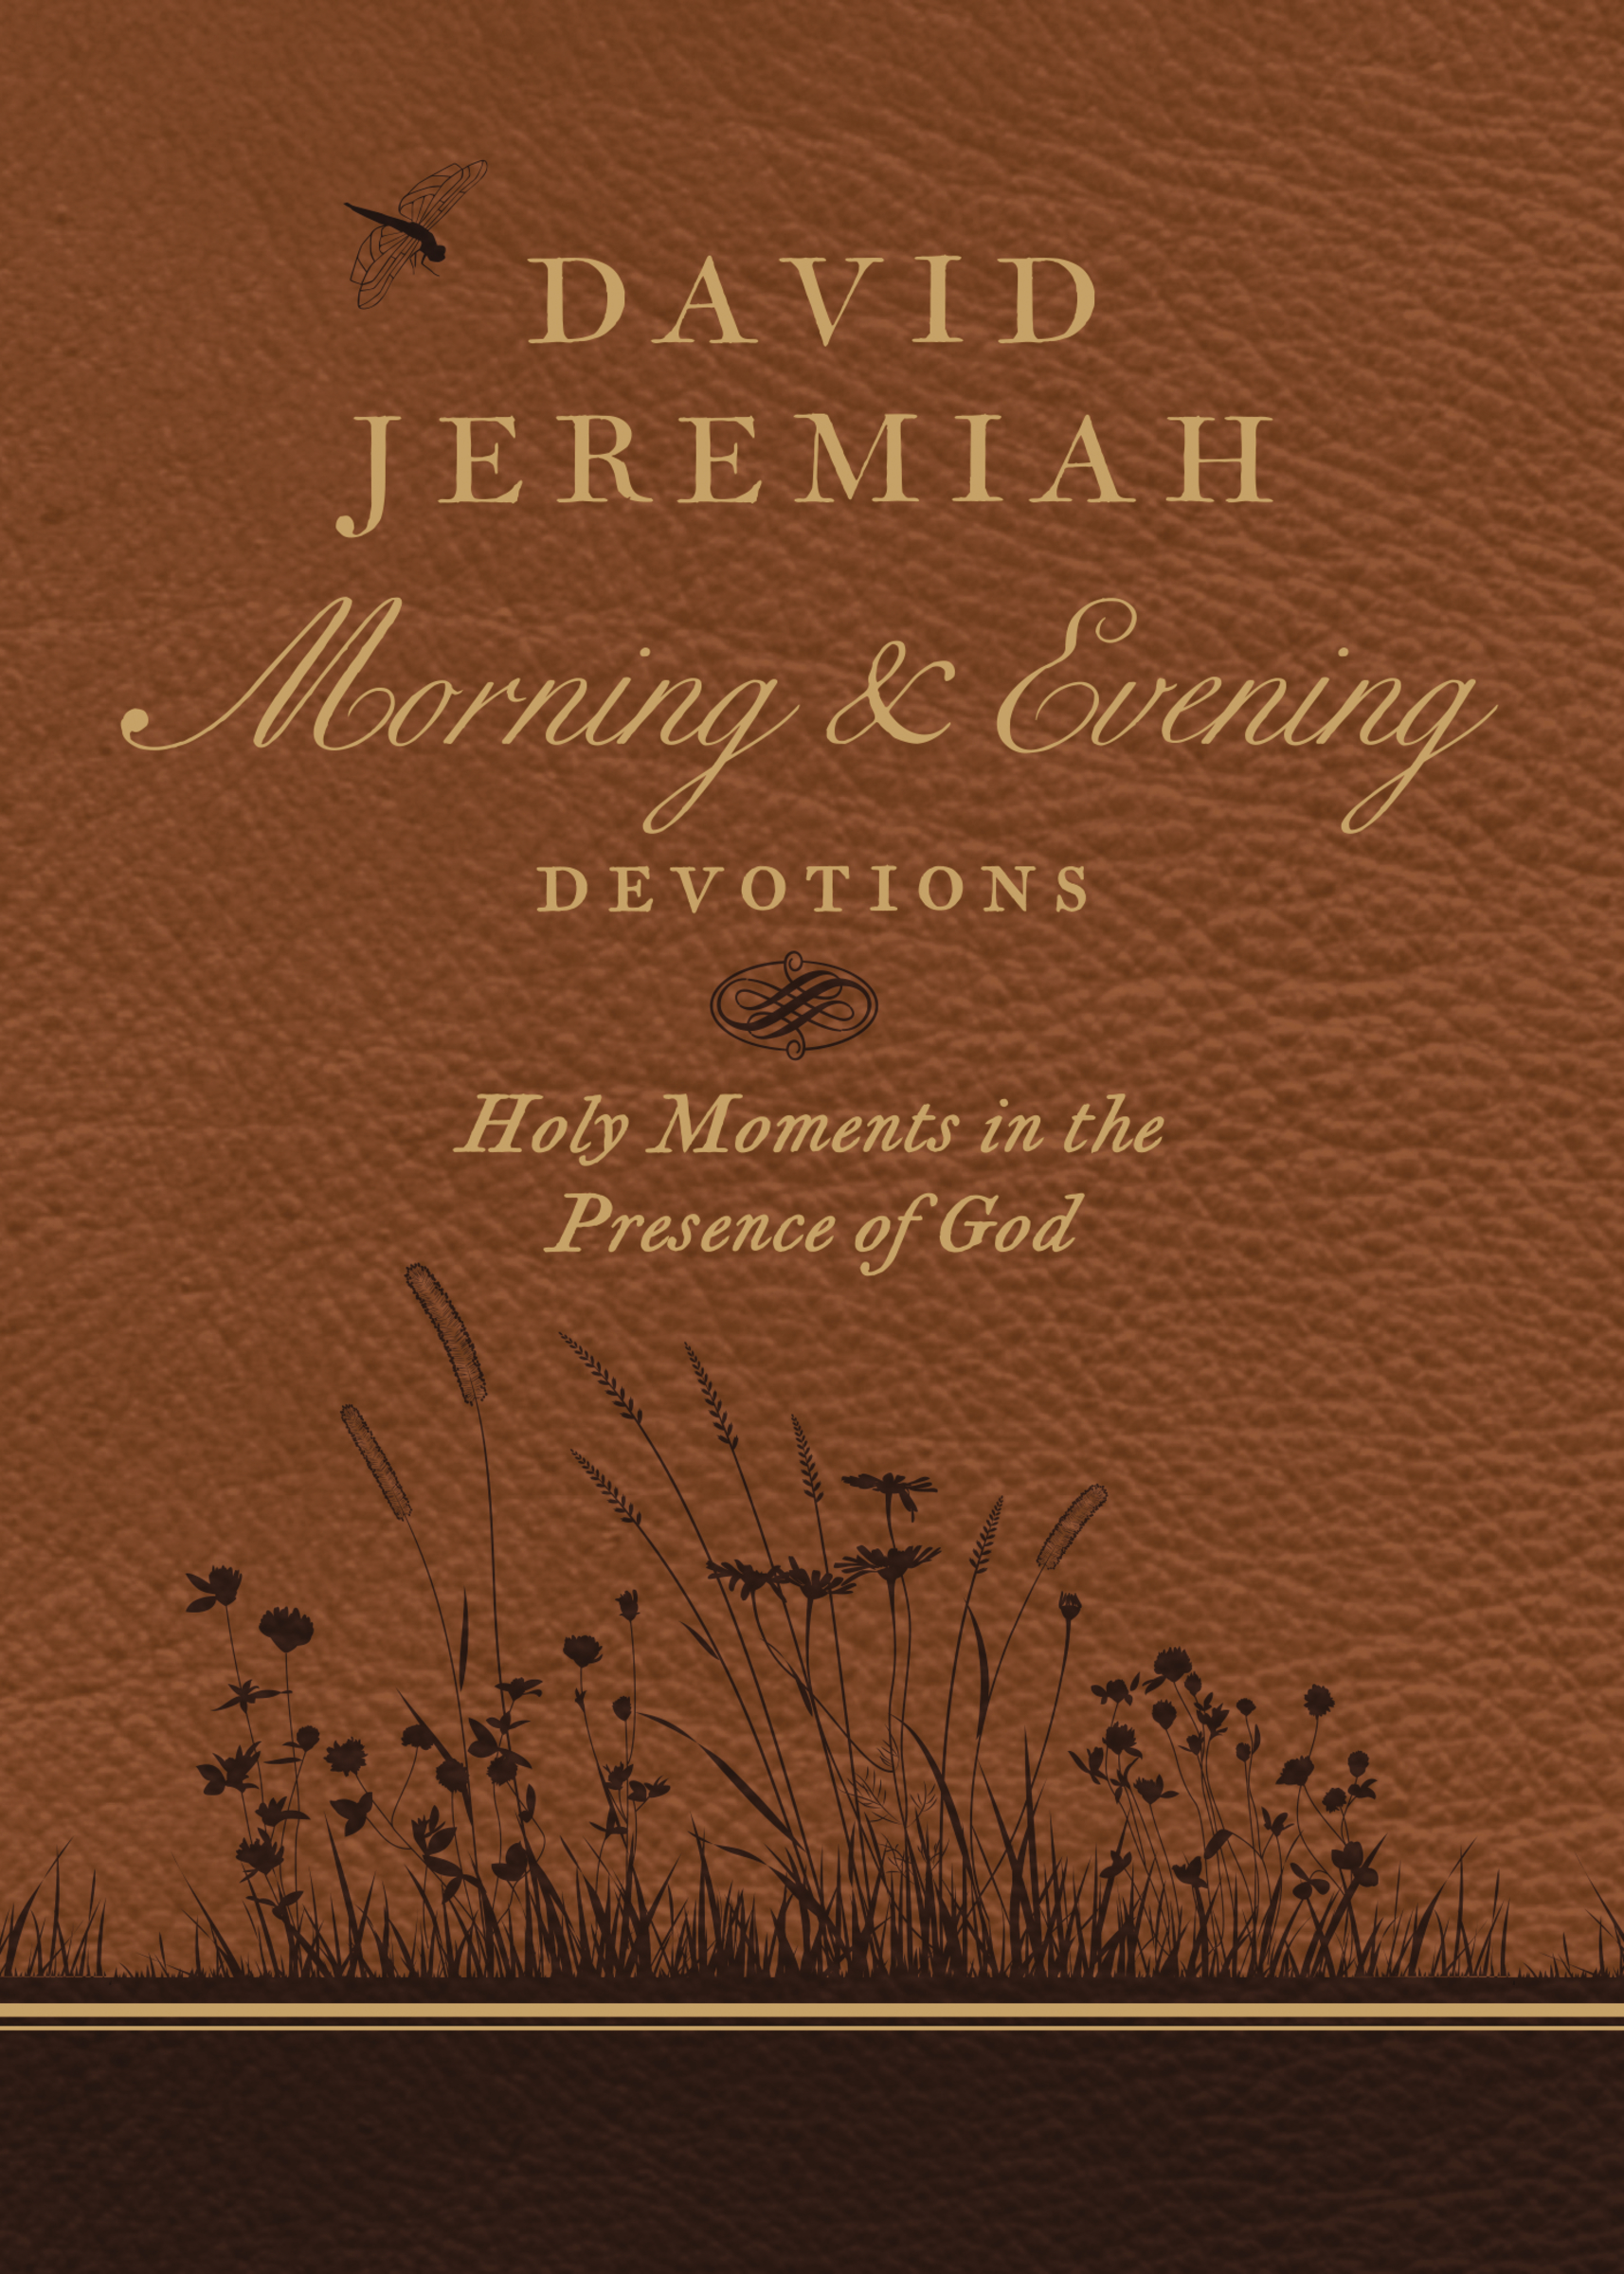 David Jeremiah Morning and Evening Devotions Holy Moments in the Presence of God